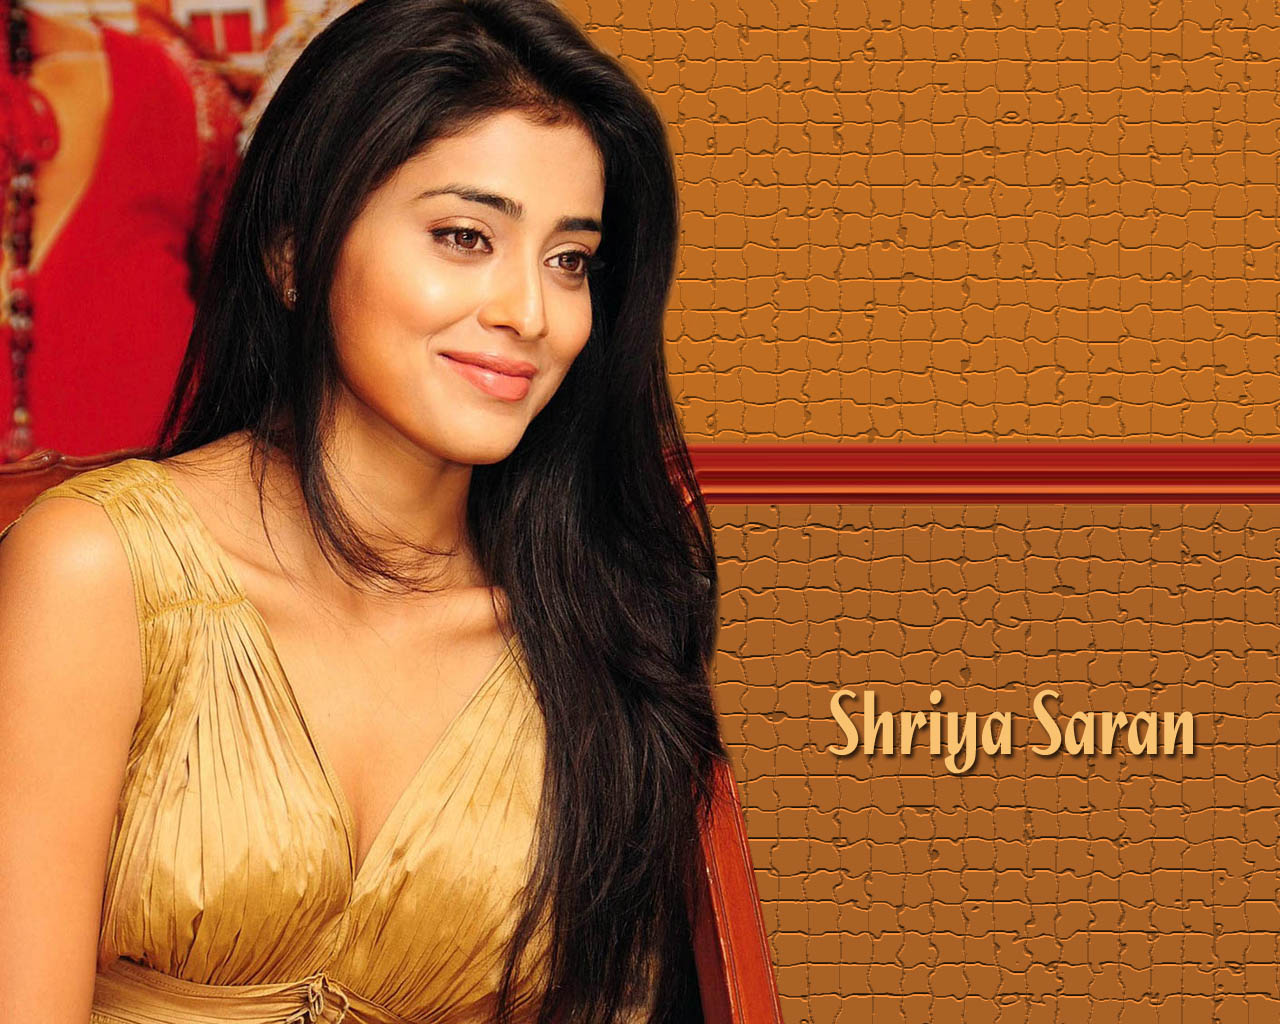 shriya saran hd wallpapers 2012, shriya saran wallpapers for desktop